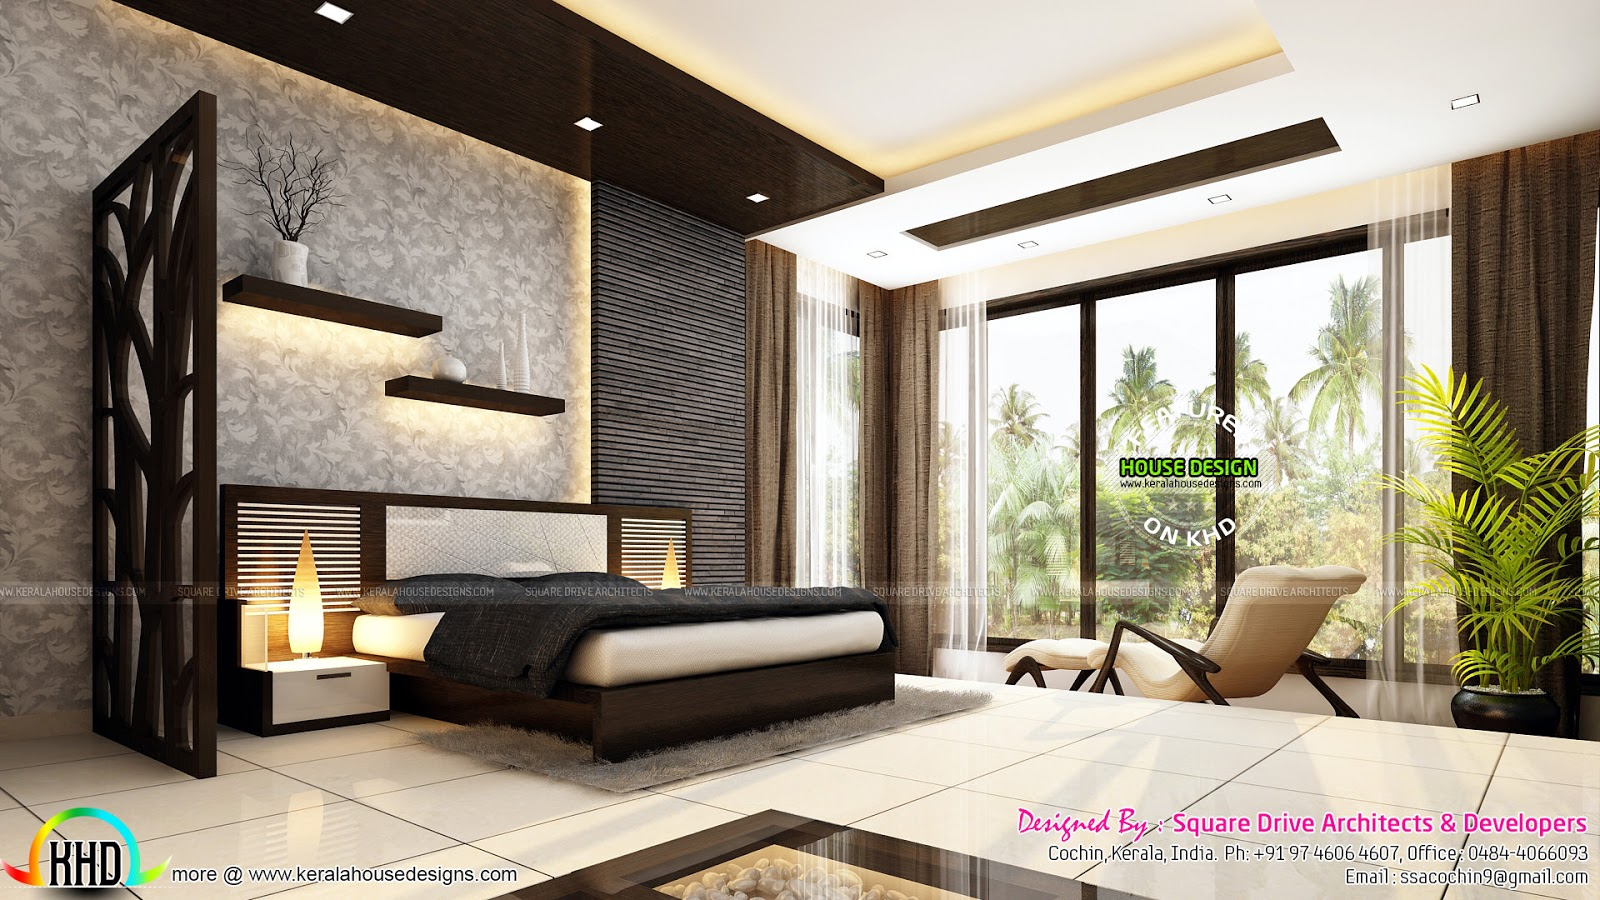 Very beautiful modern interior designs kerala home for Home design interior design